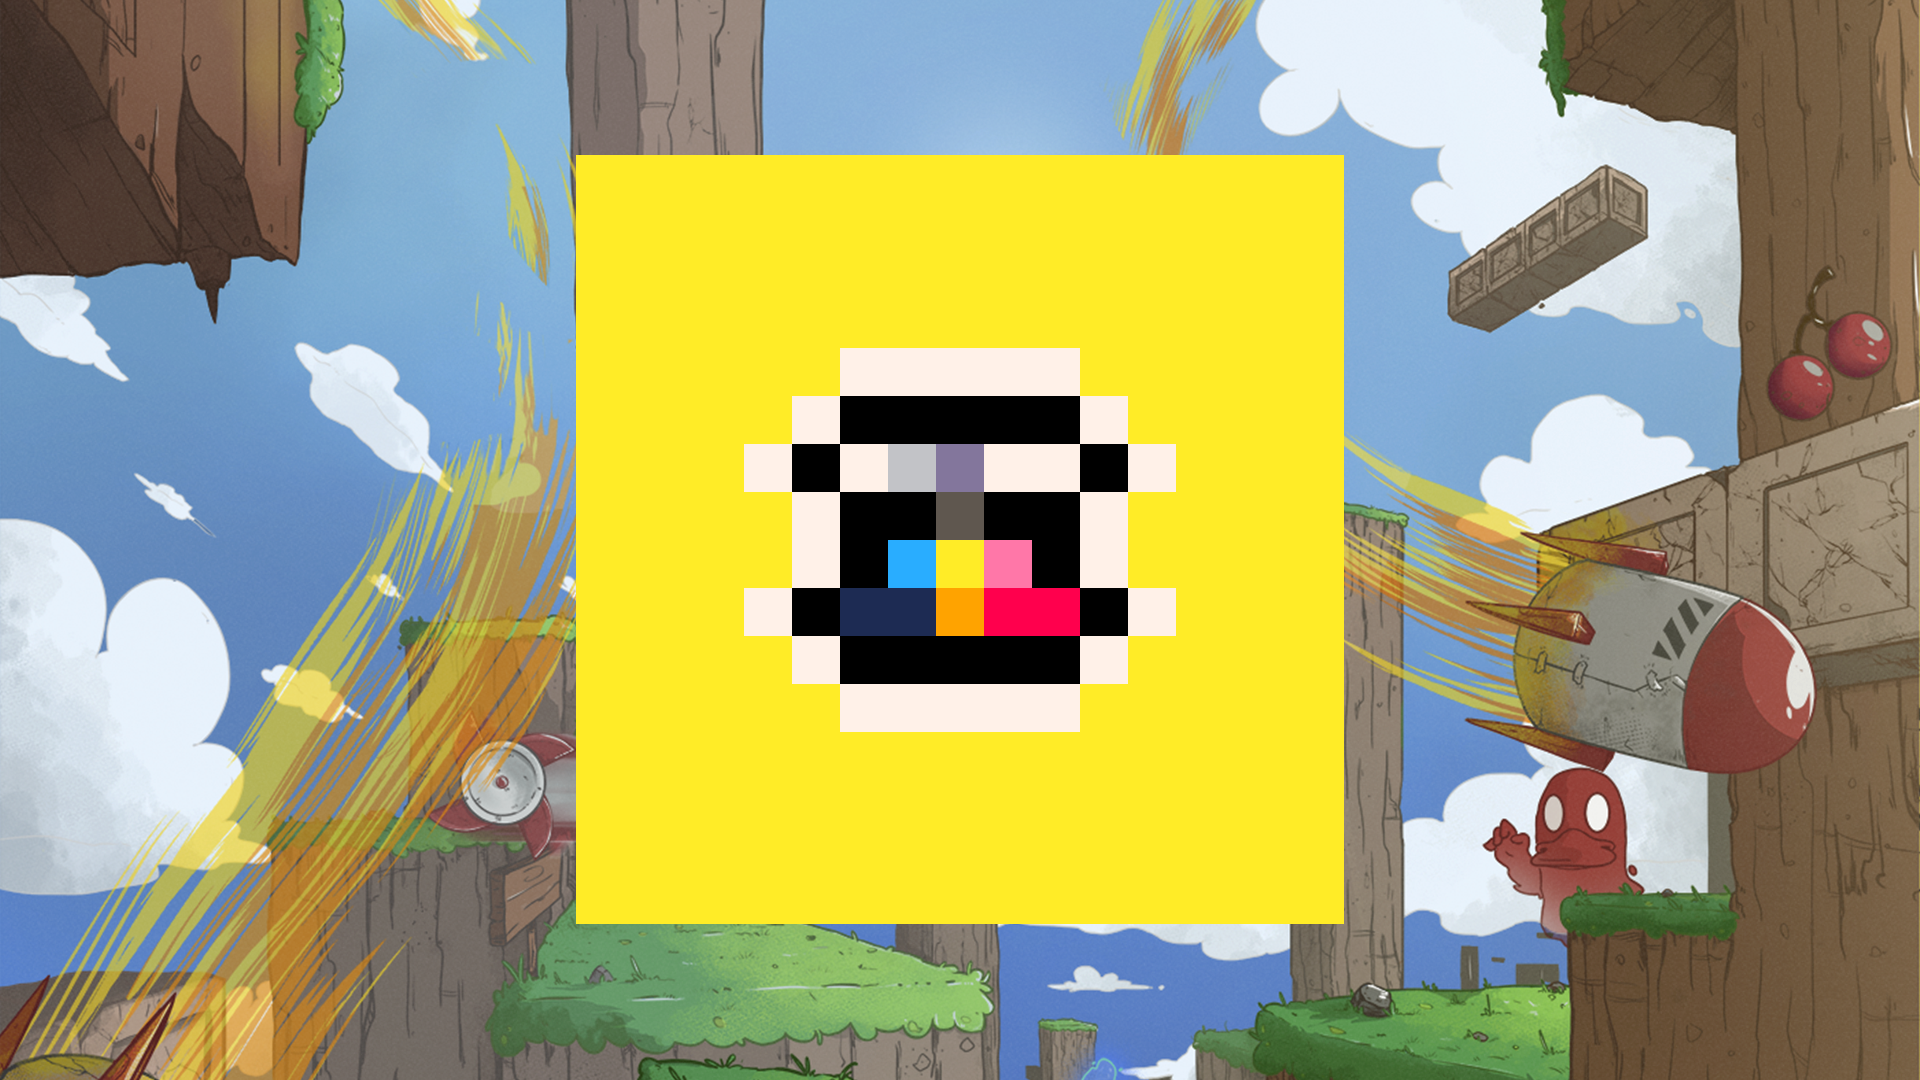 Icon for Propeller hat